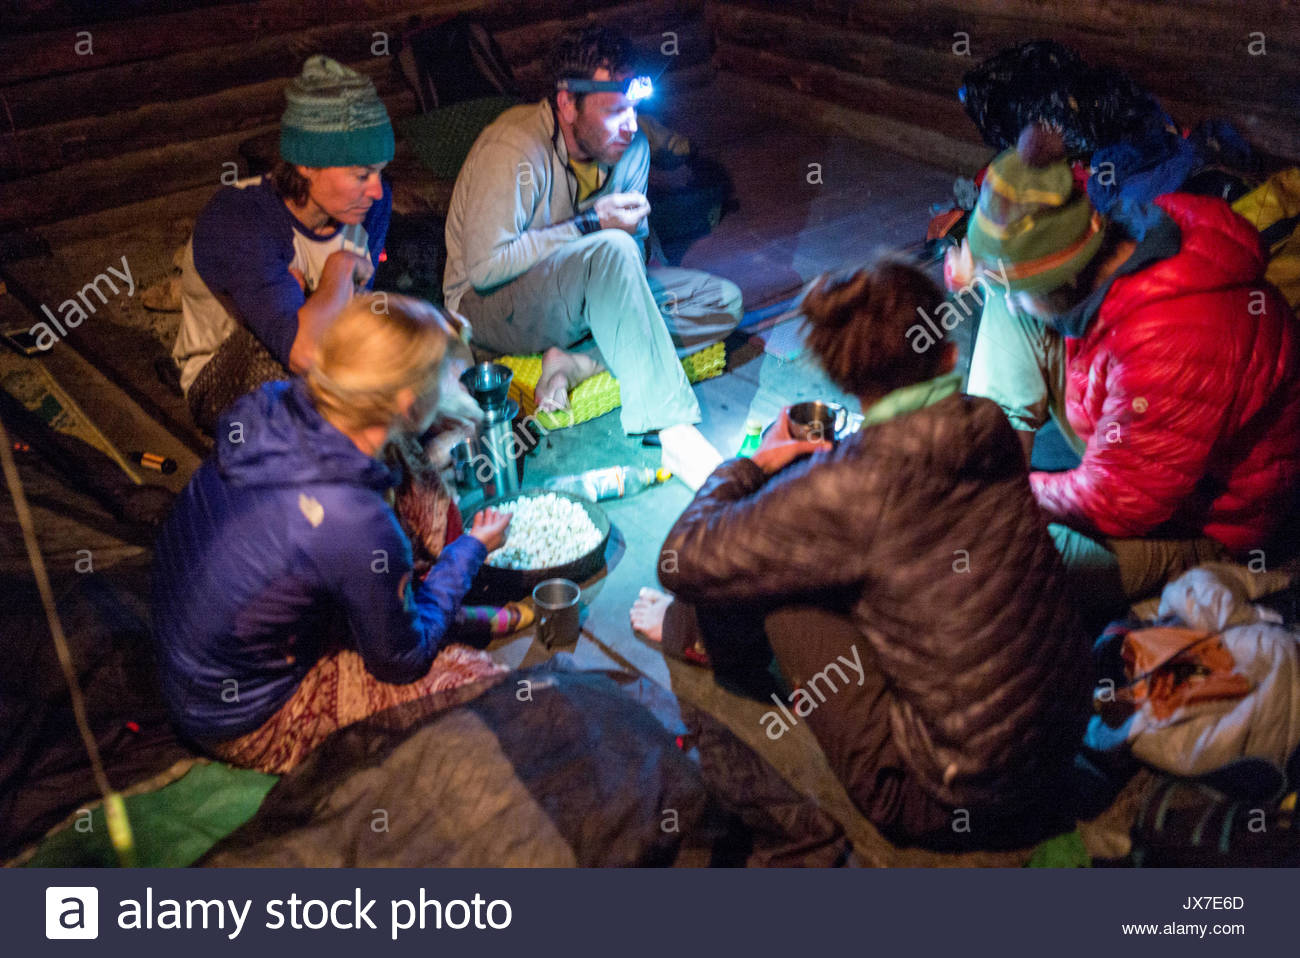 An expedition team sits together at night, eating and drinking on a mat. - Stock Image